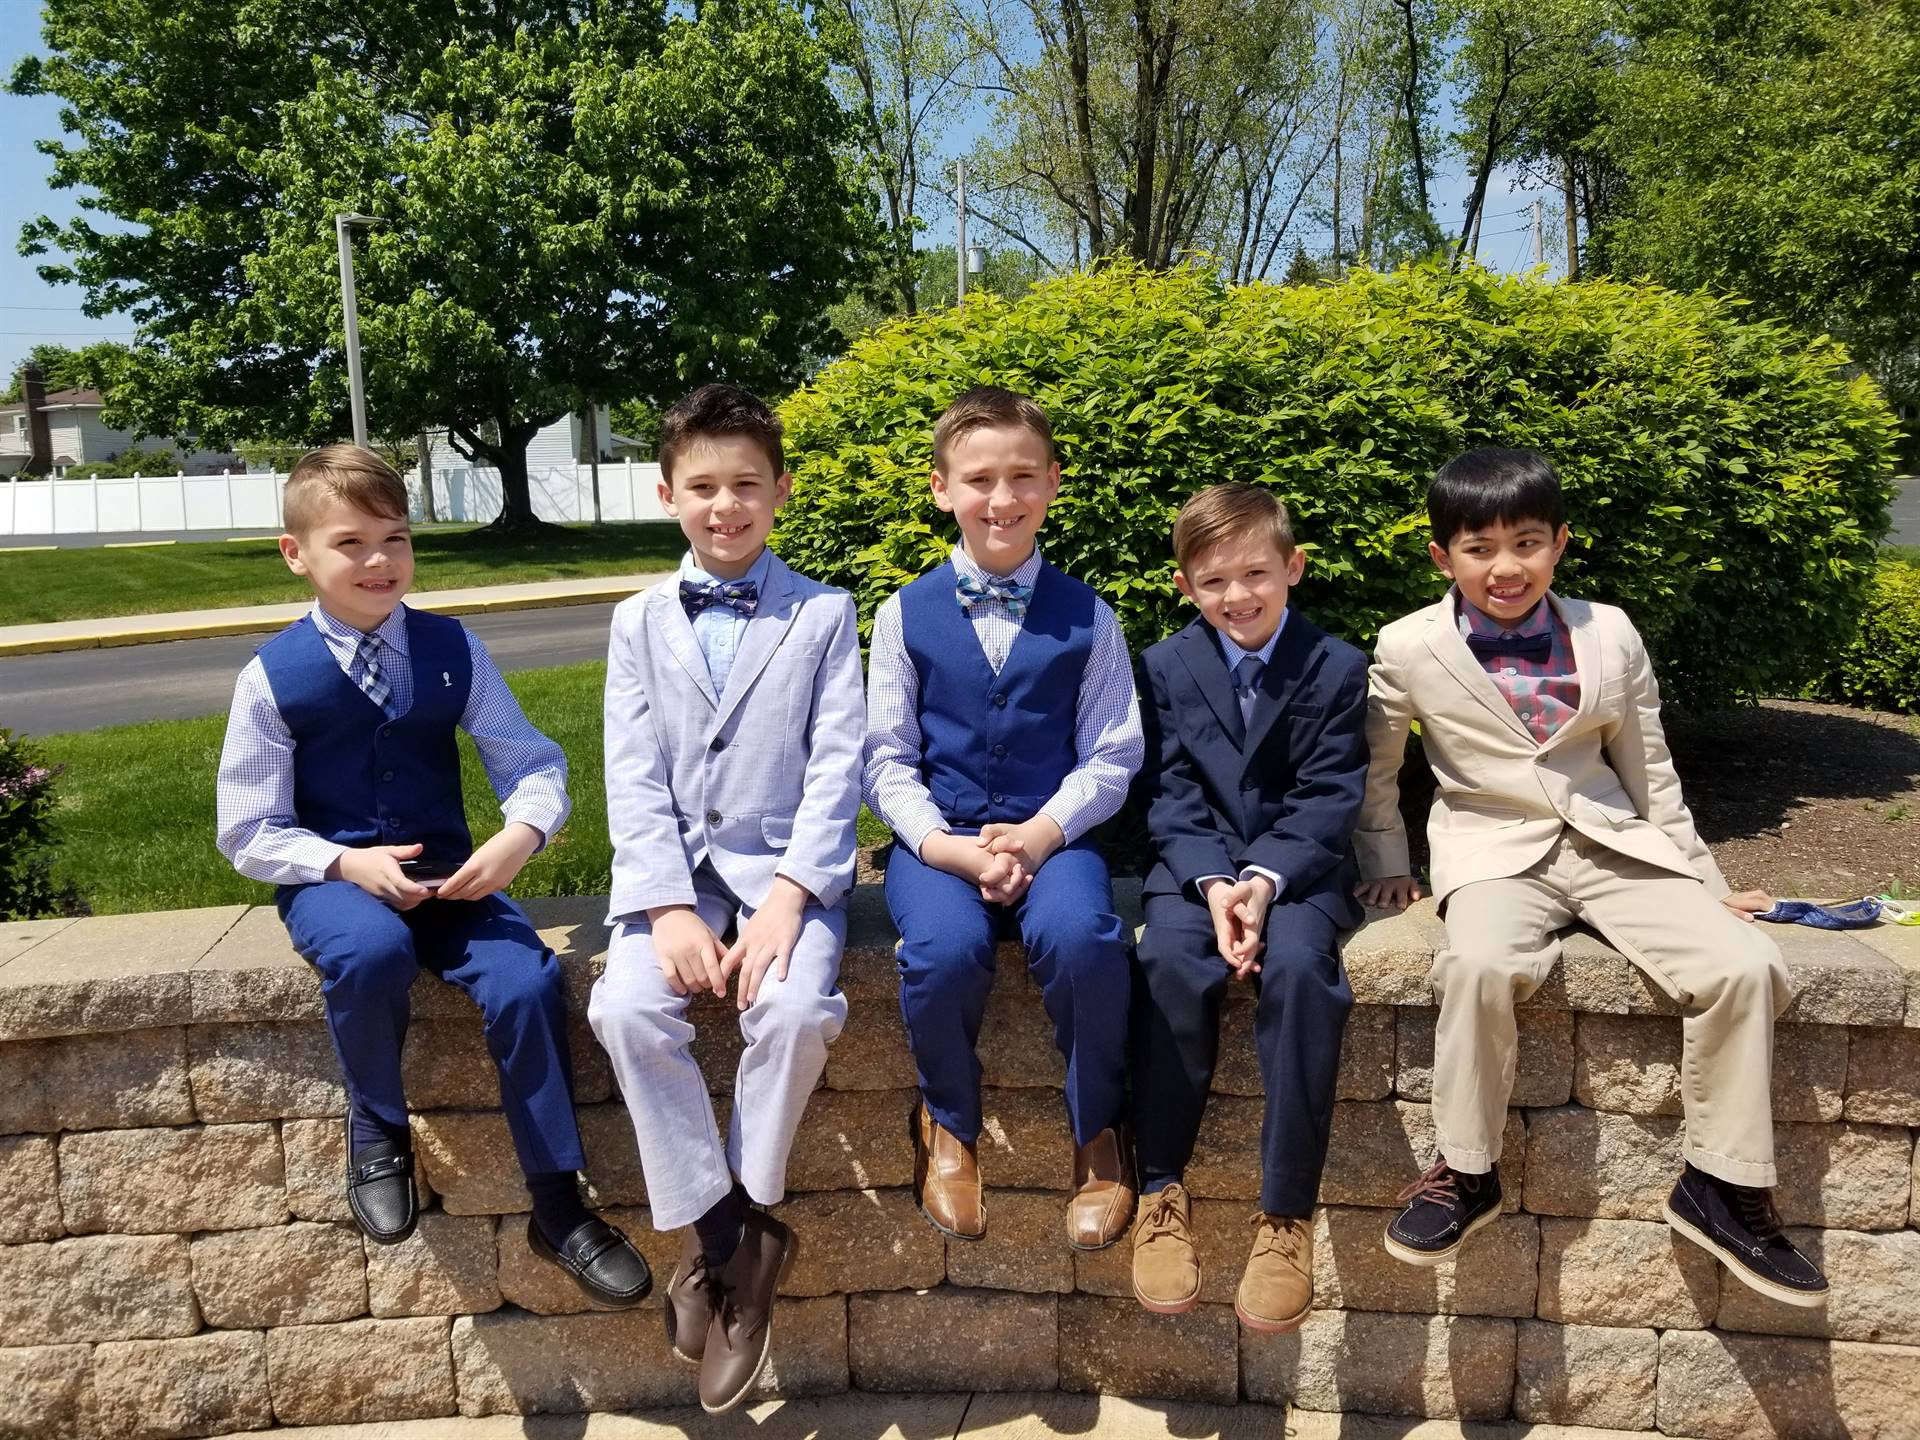 boys in suits smile after their first communion